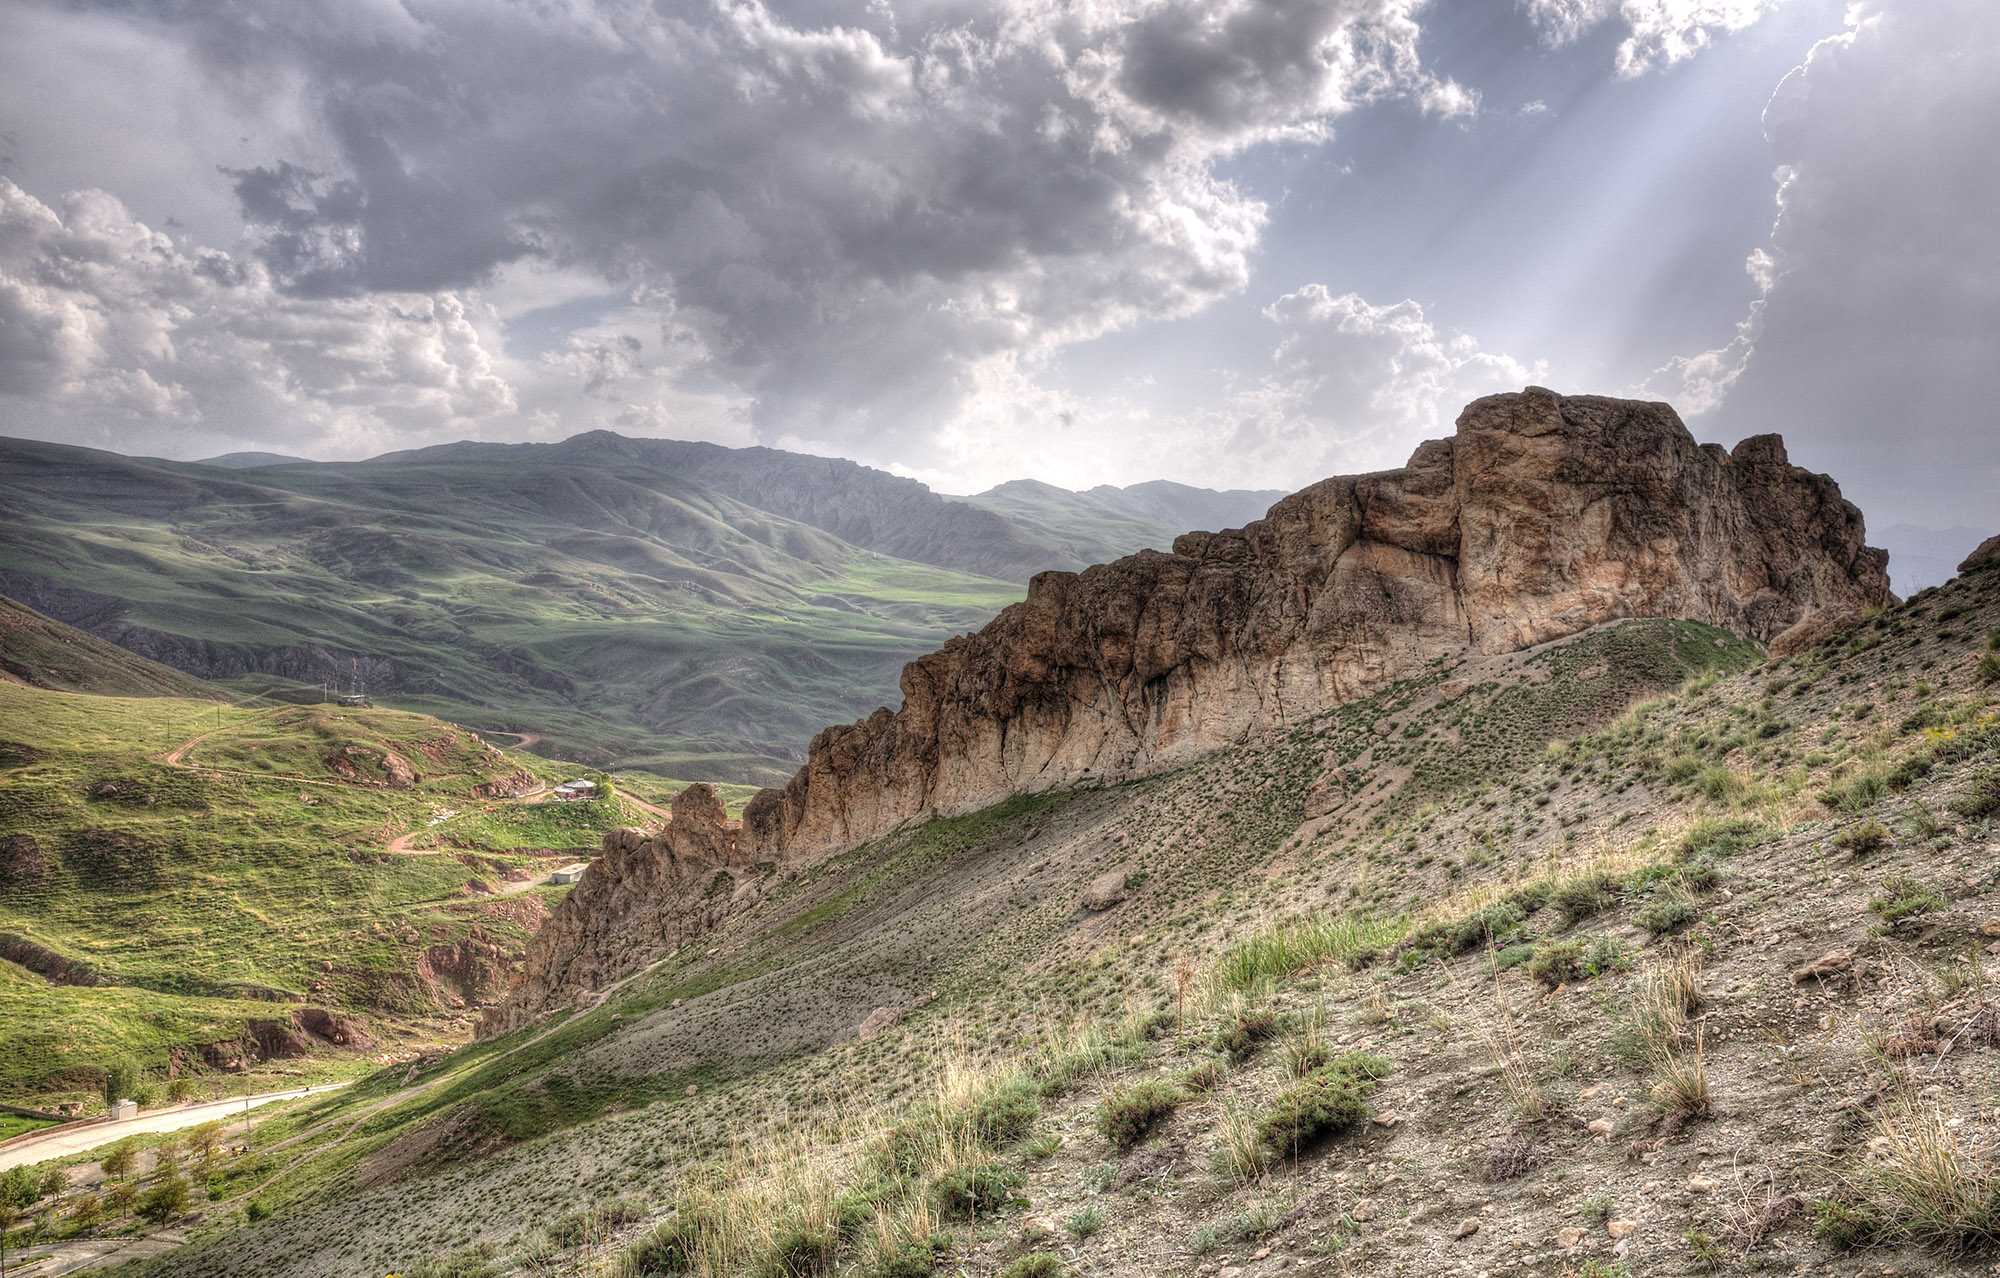 Mountain rock steppe in Ishak Pasha environs